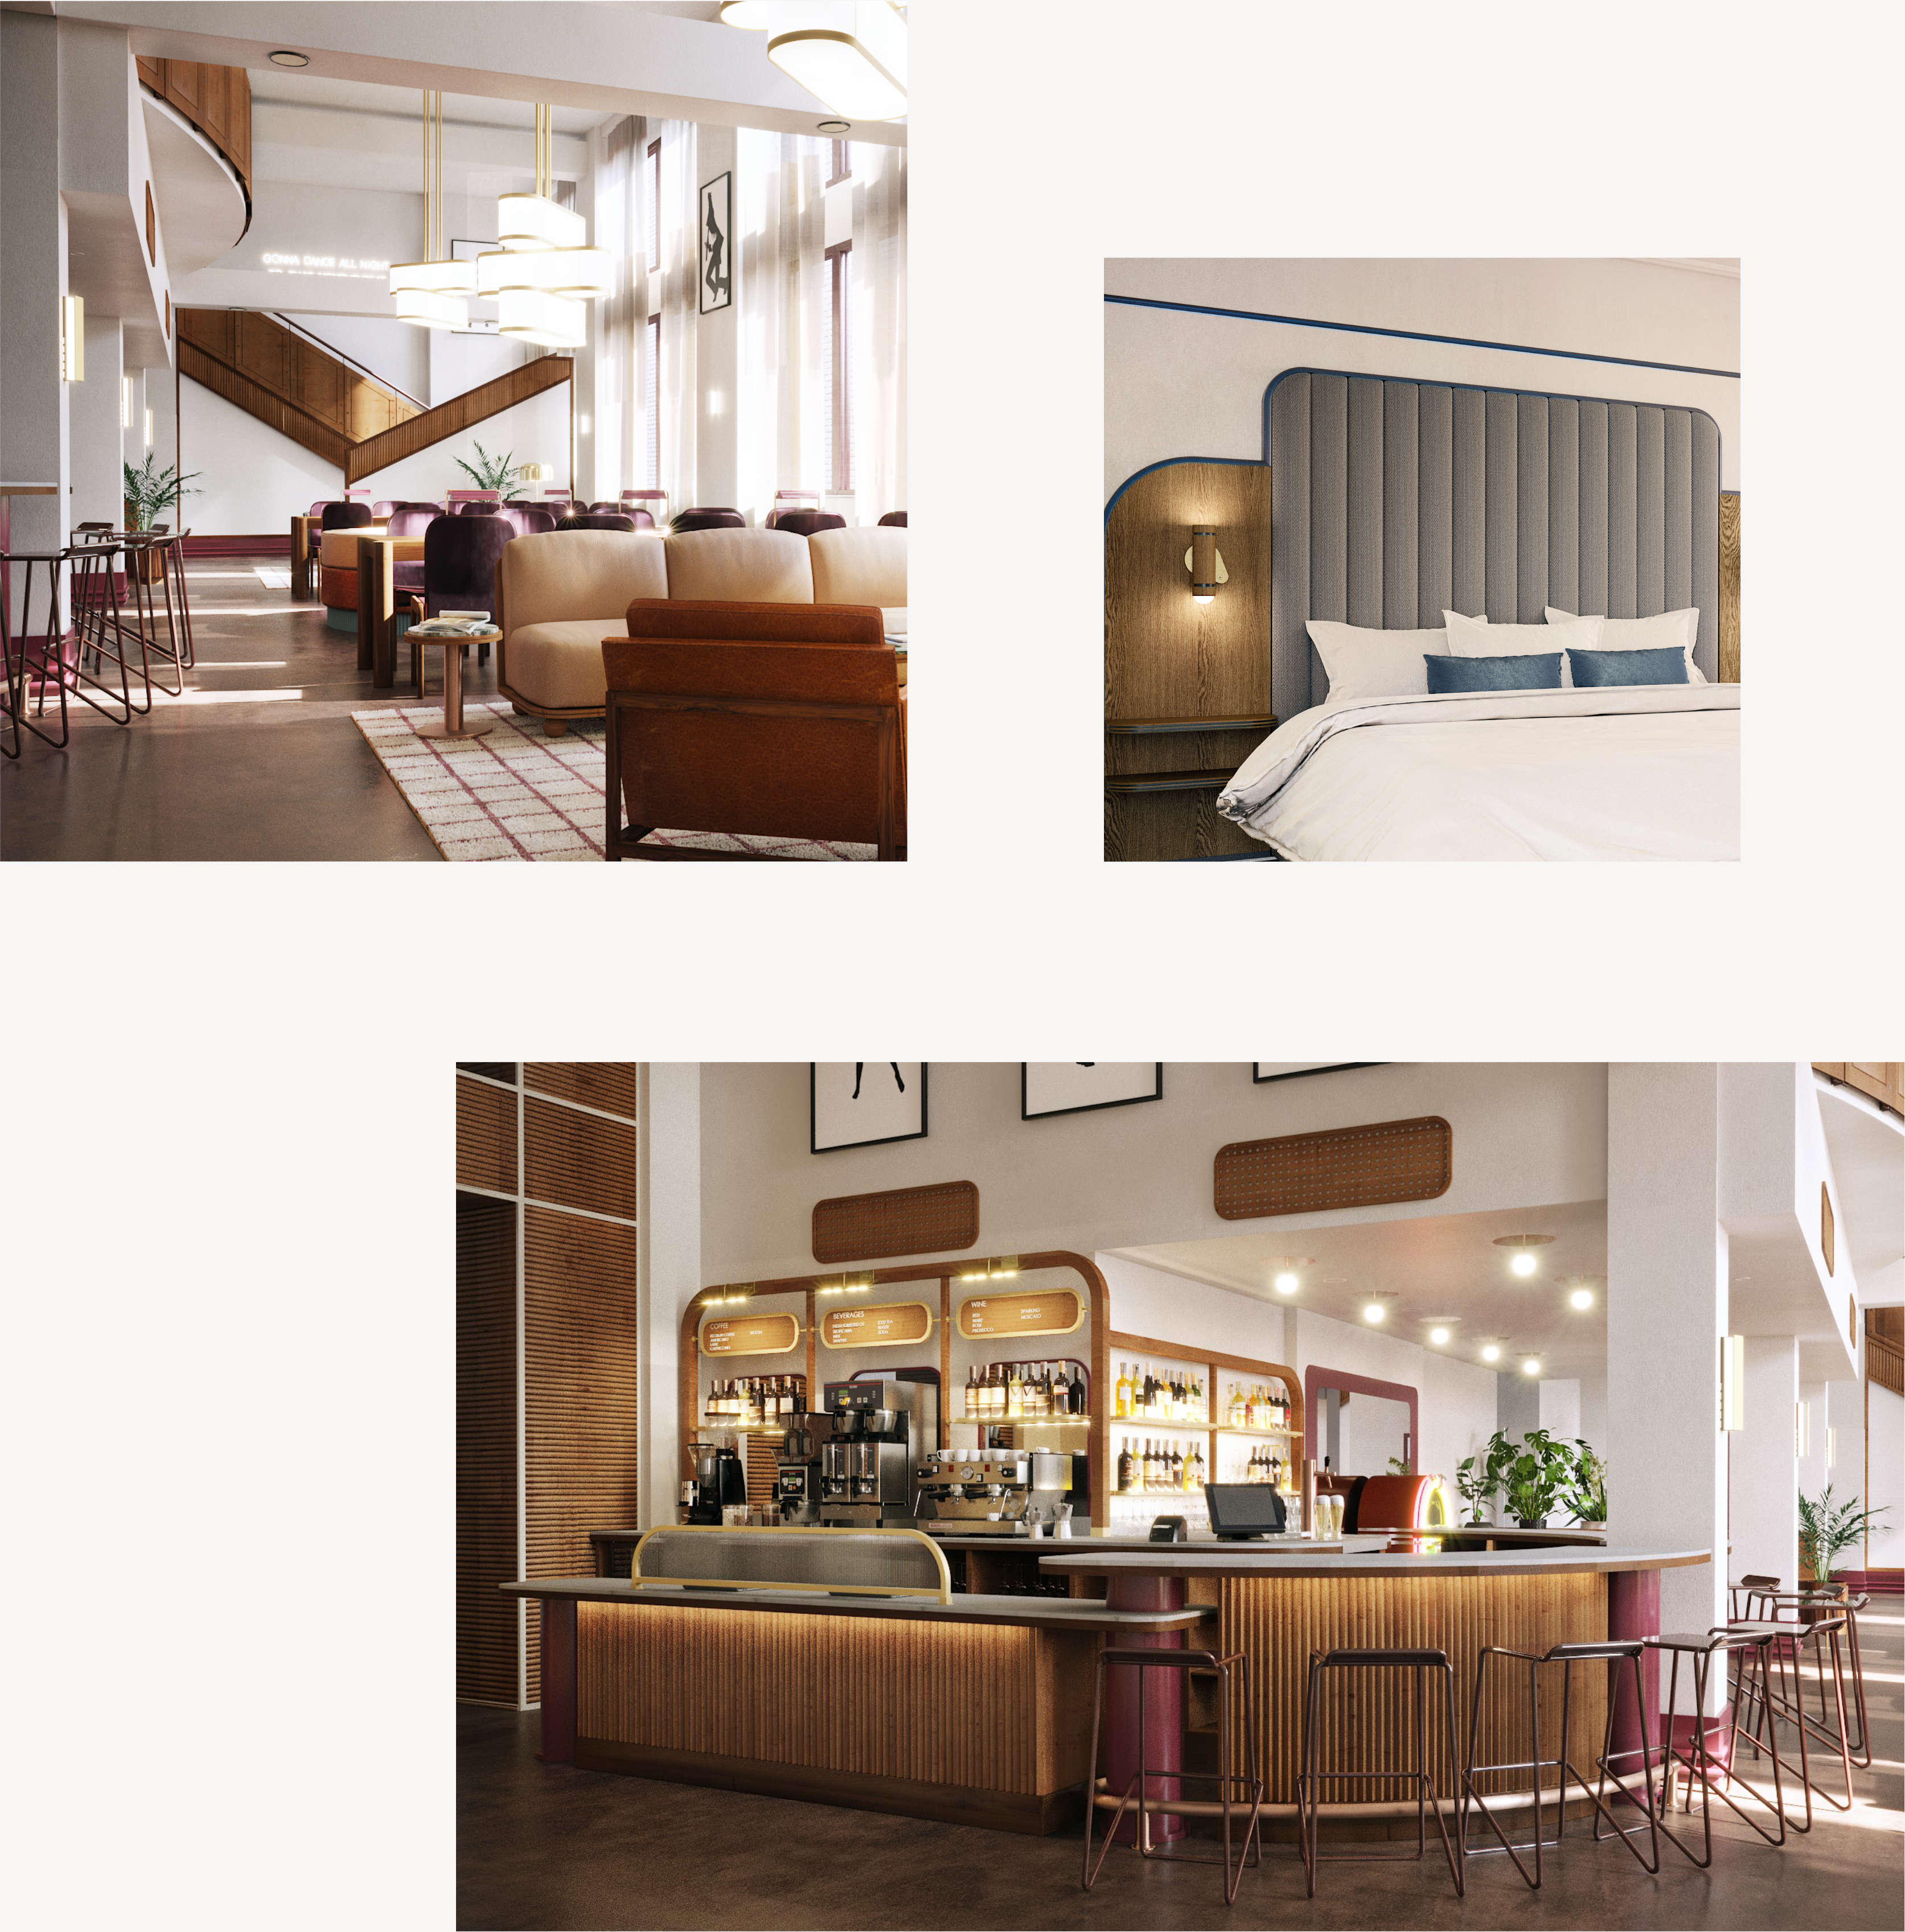 Spread of Hu. Hotel interior design moments, including lobby, guest room, and bar.